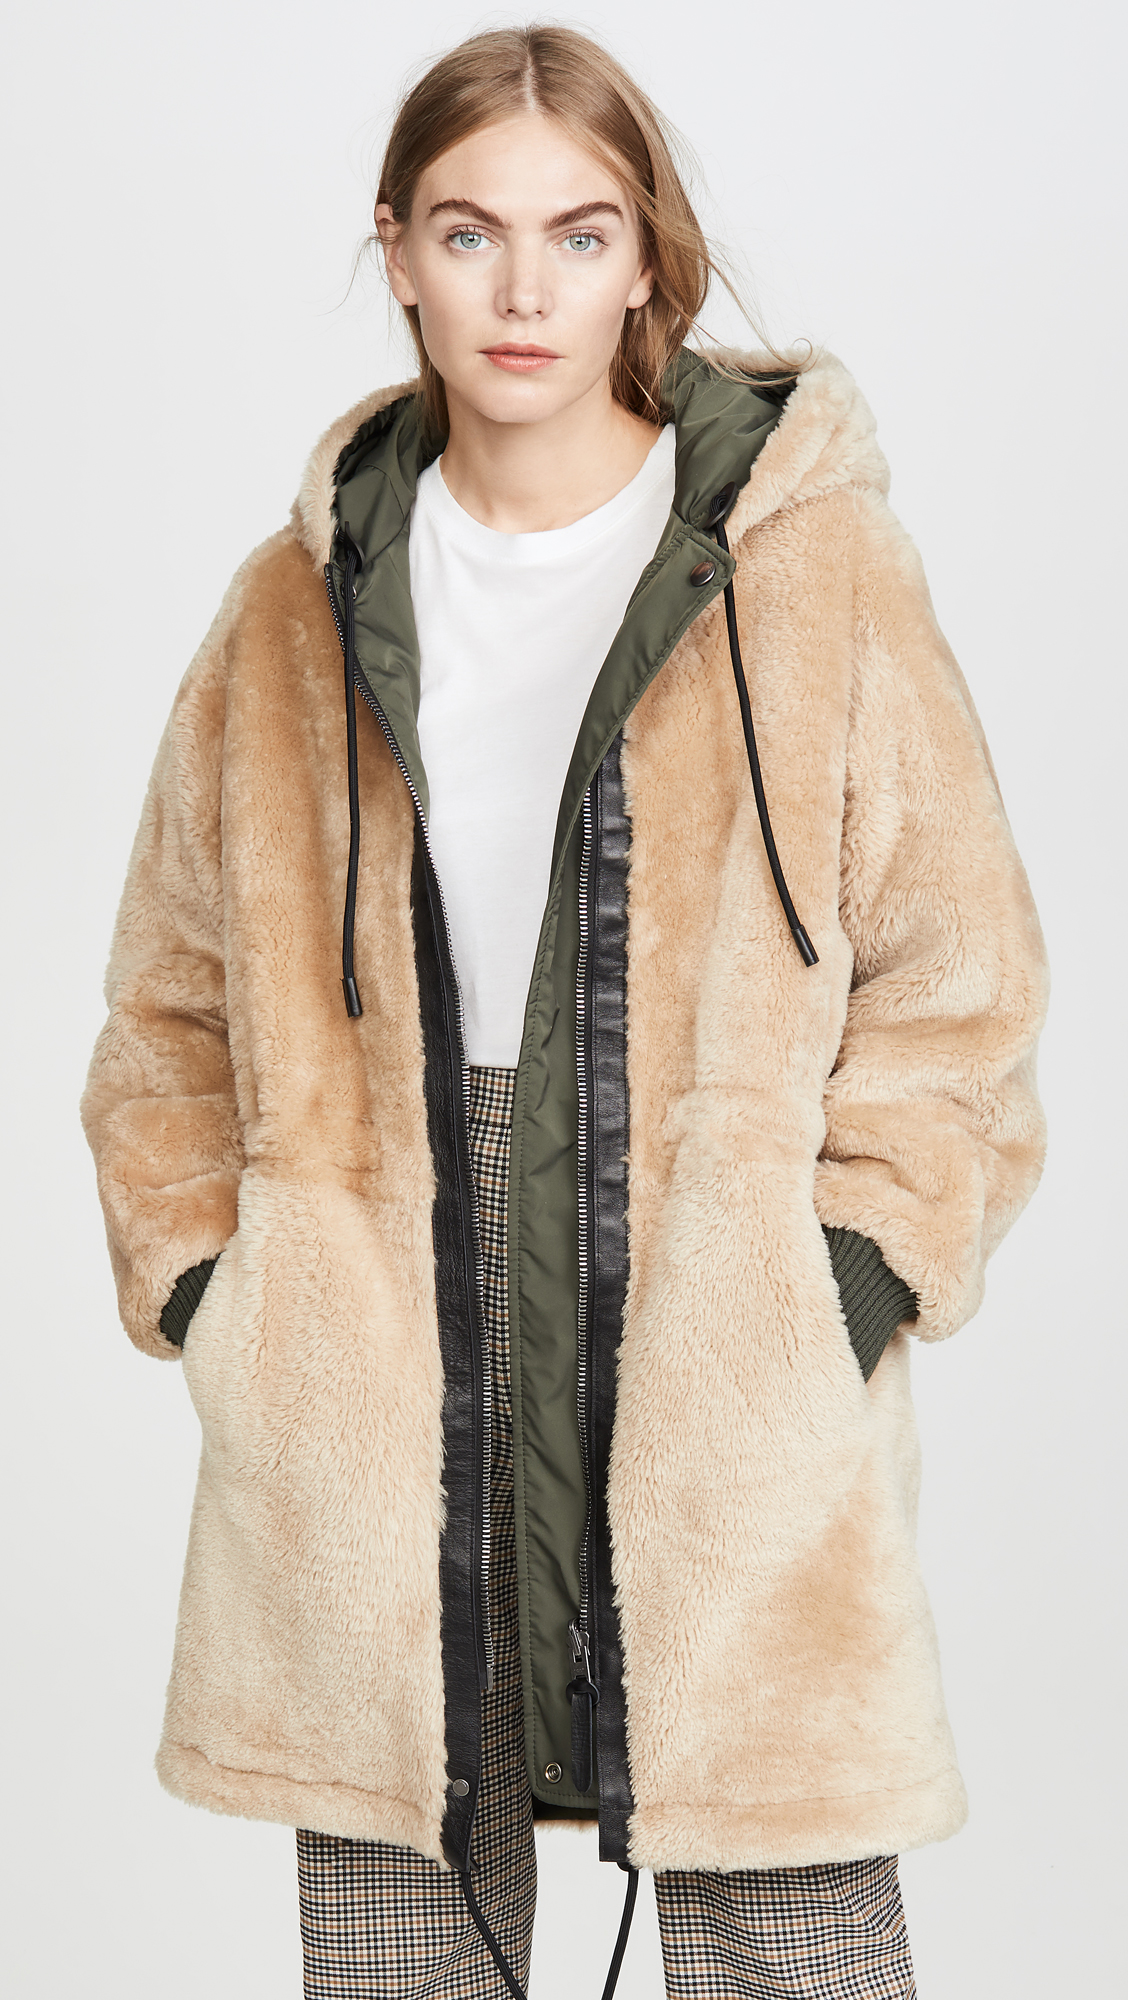 Coach Shearling On Reversible 1941 ParkaSHOPBOPSale doxBCer